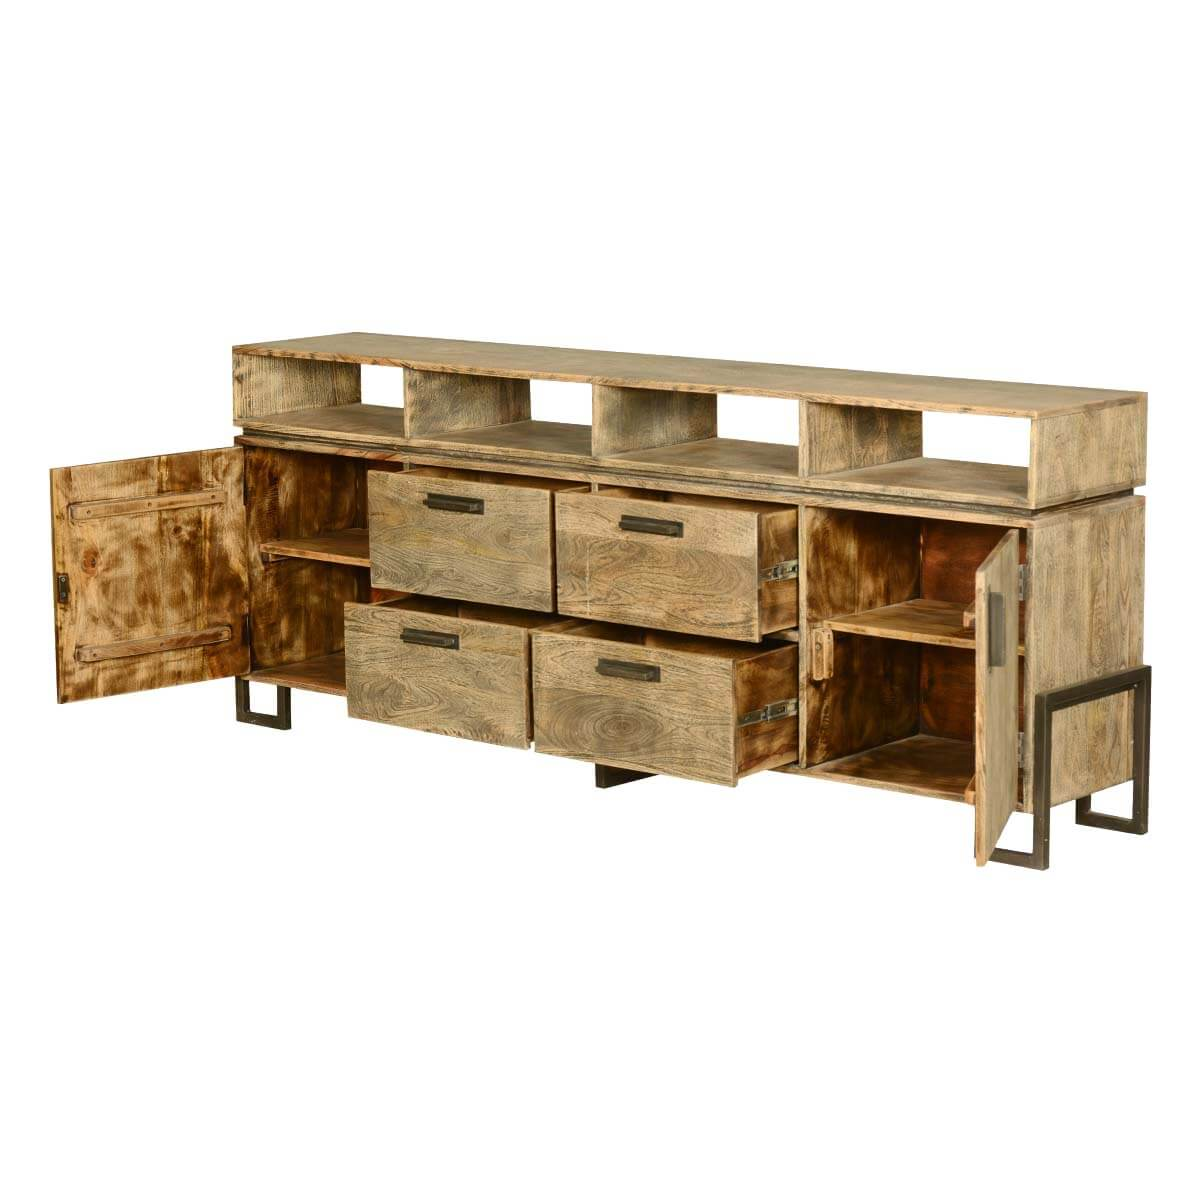 Industrial fusion modern rustic solid wood storage buffet for Rustic industrial